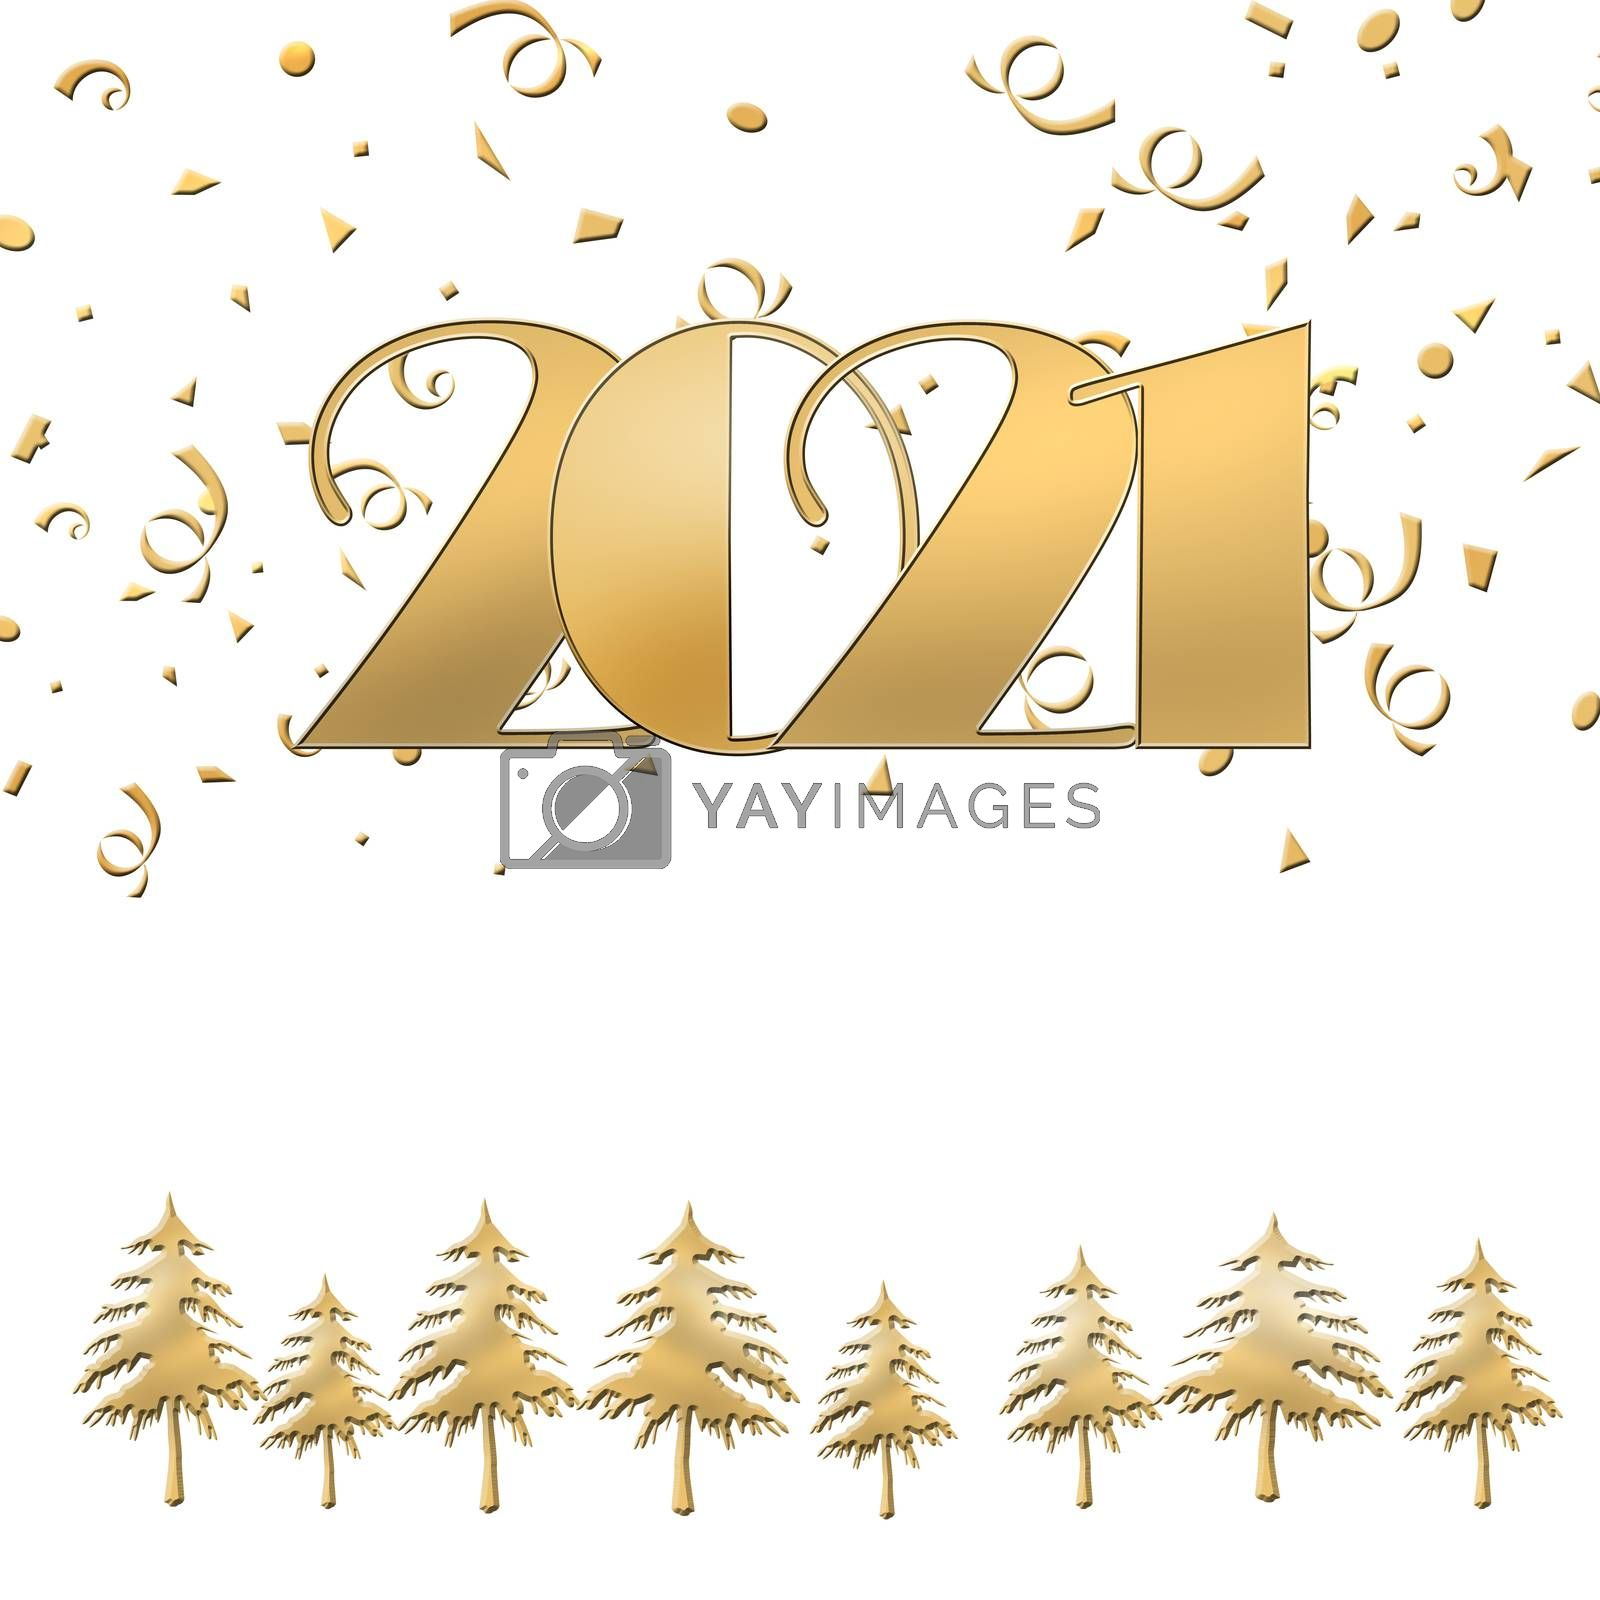 2021 Happy new year Merry Christmas gold text on white background with gold christmas trees and confetti. Elegant gold 2021 with light. Minimalistic text template. Copy space, mock up. 3D illustration